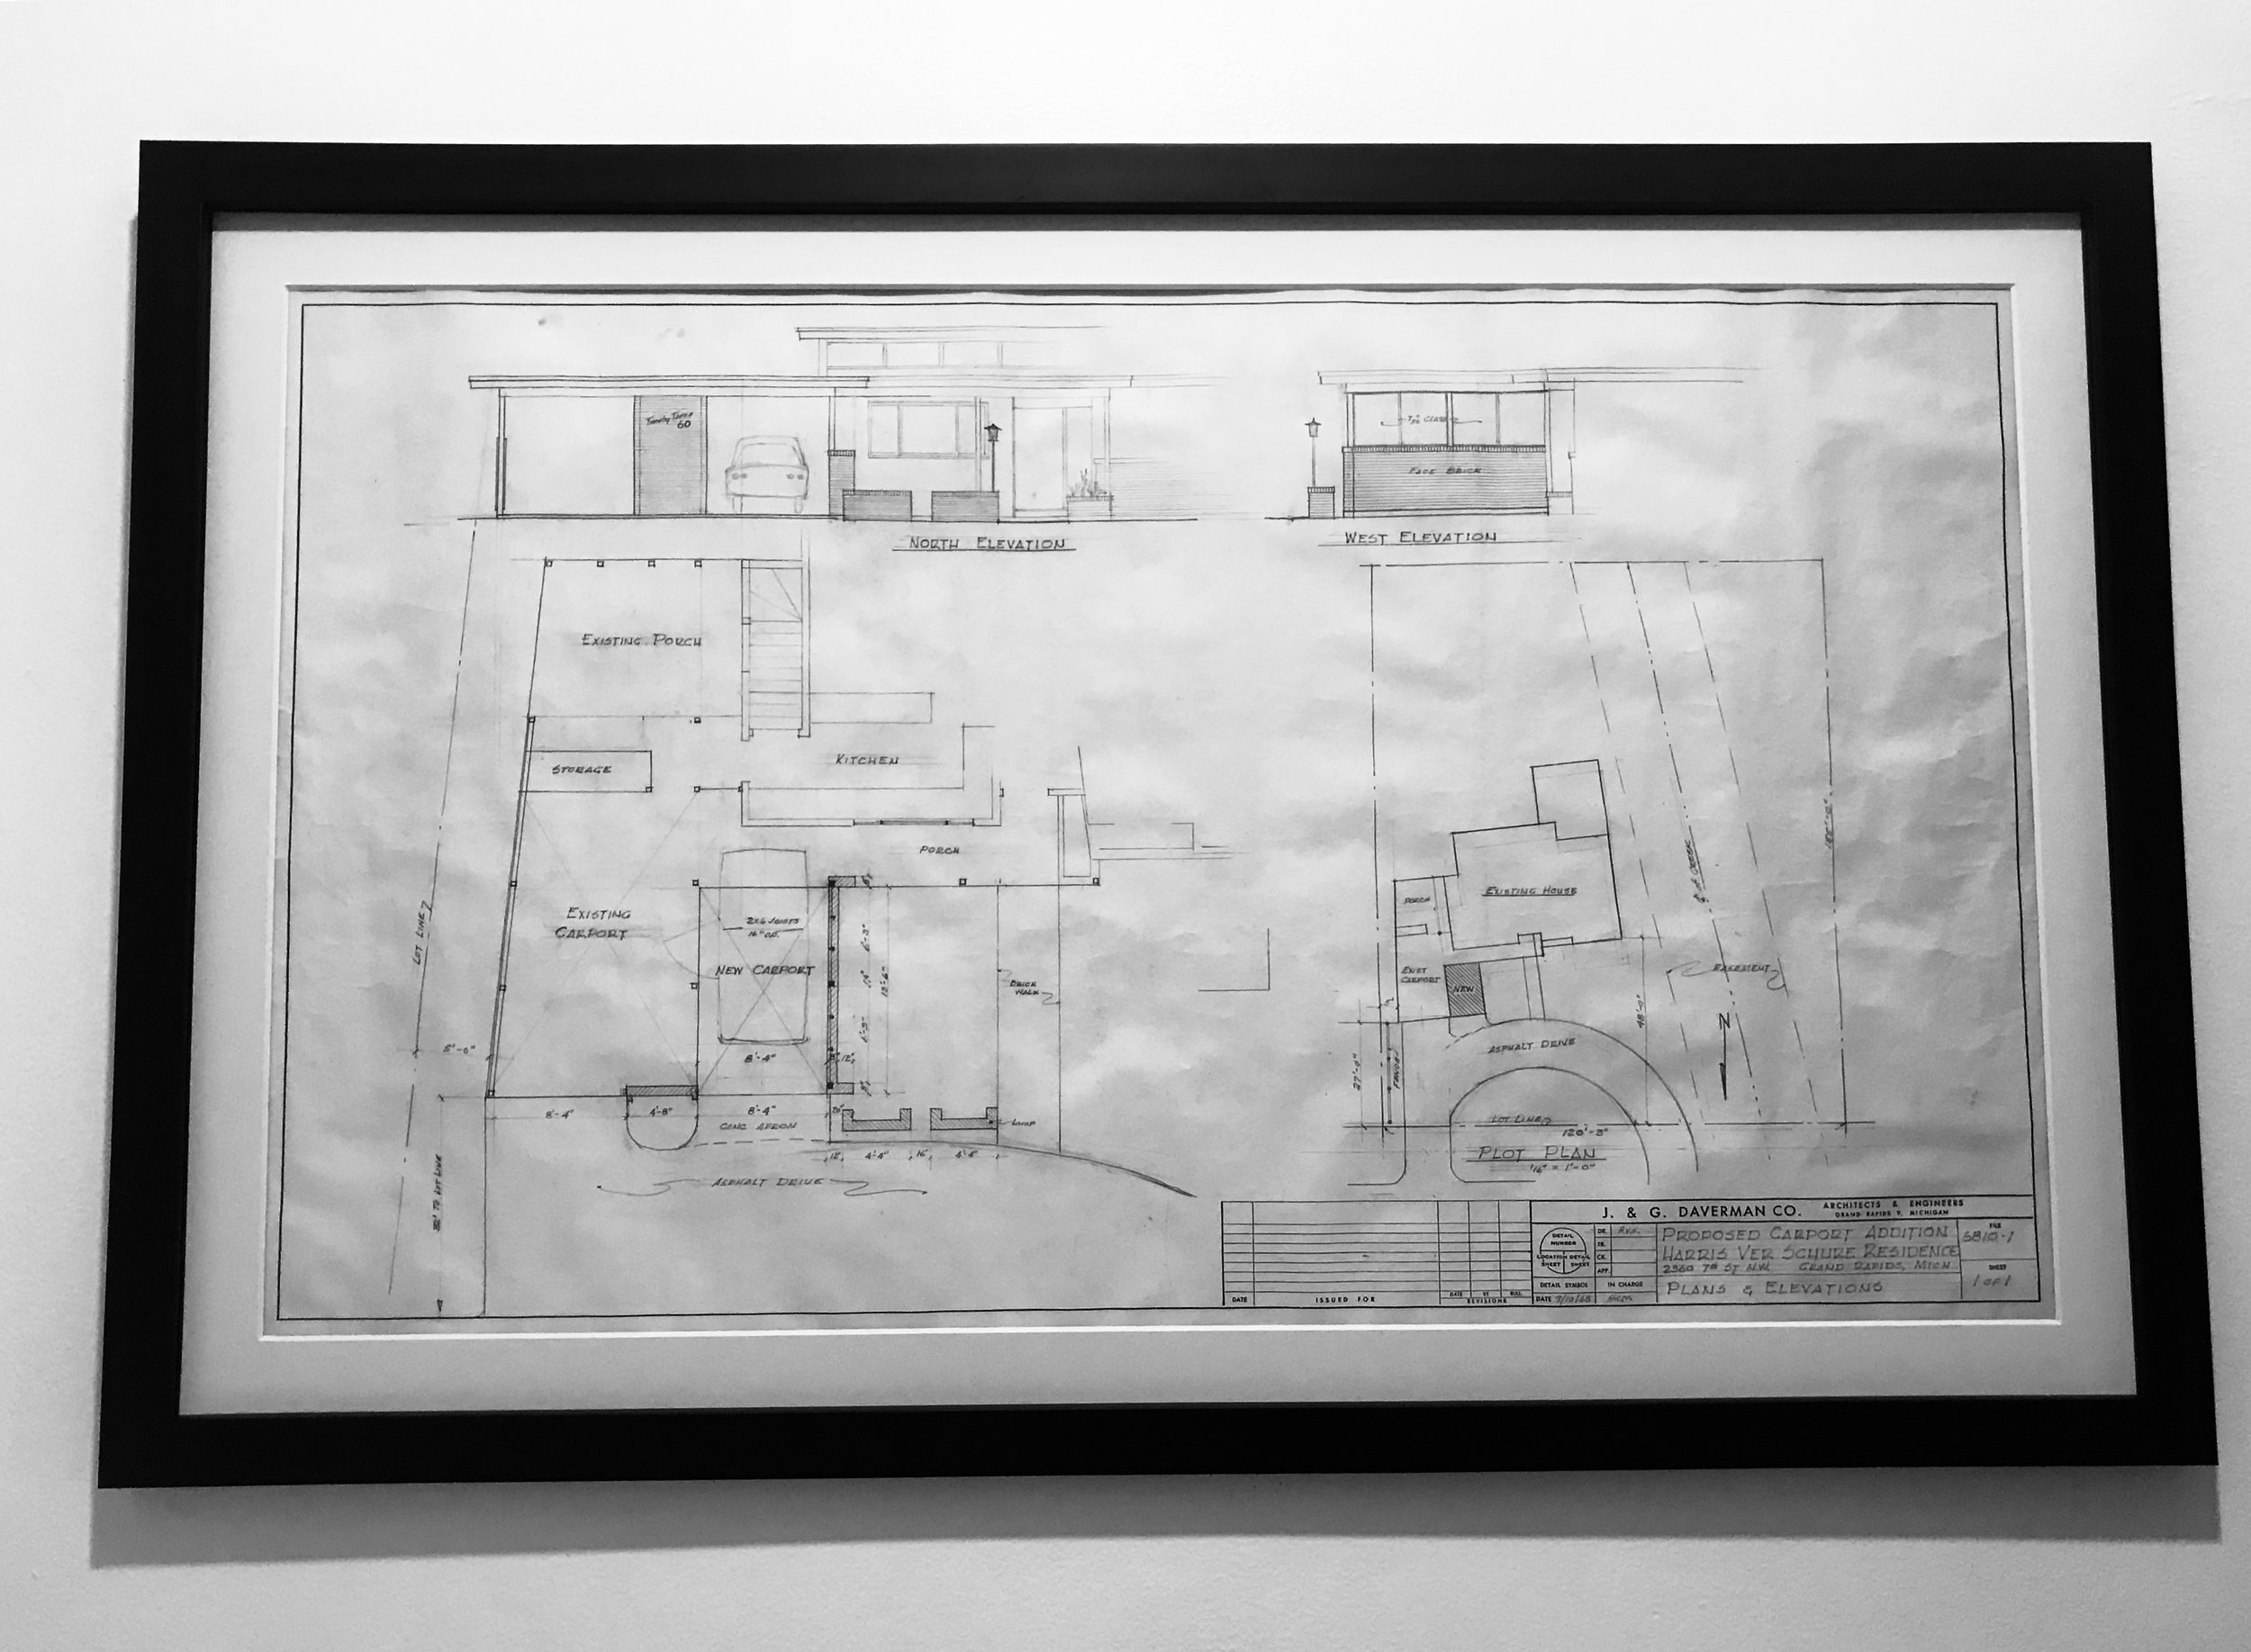 ORIGINAL ELEVATION DRAWING FOUND IN THE HOUSE